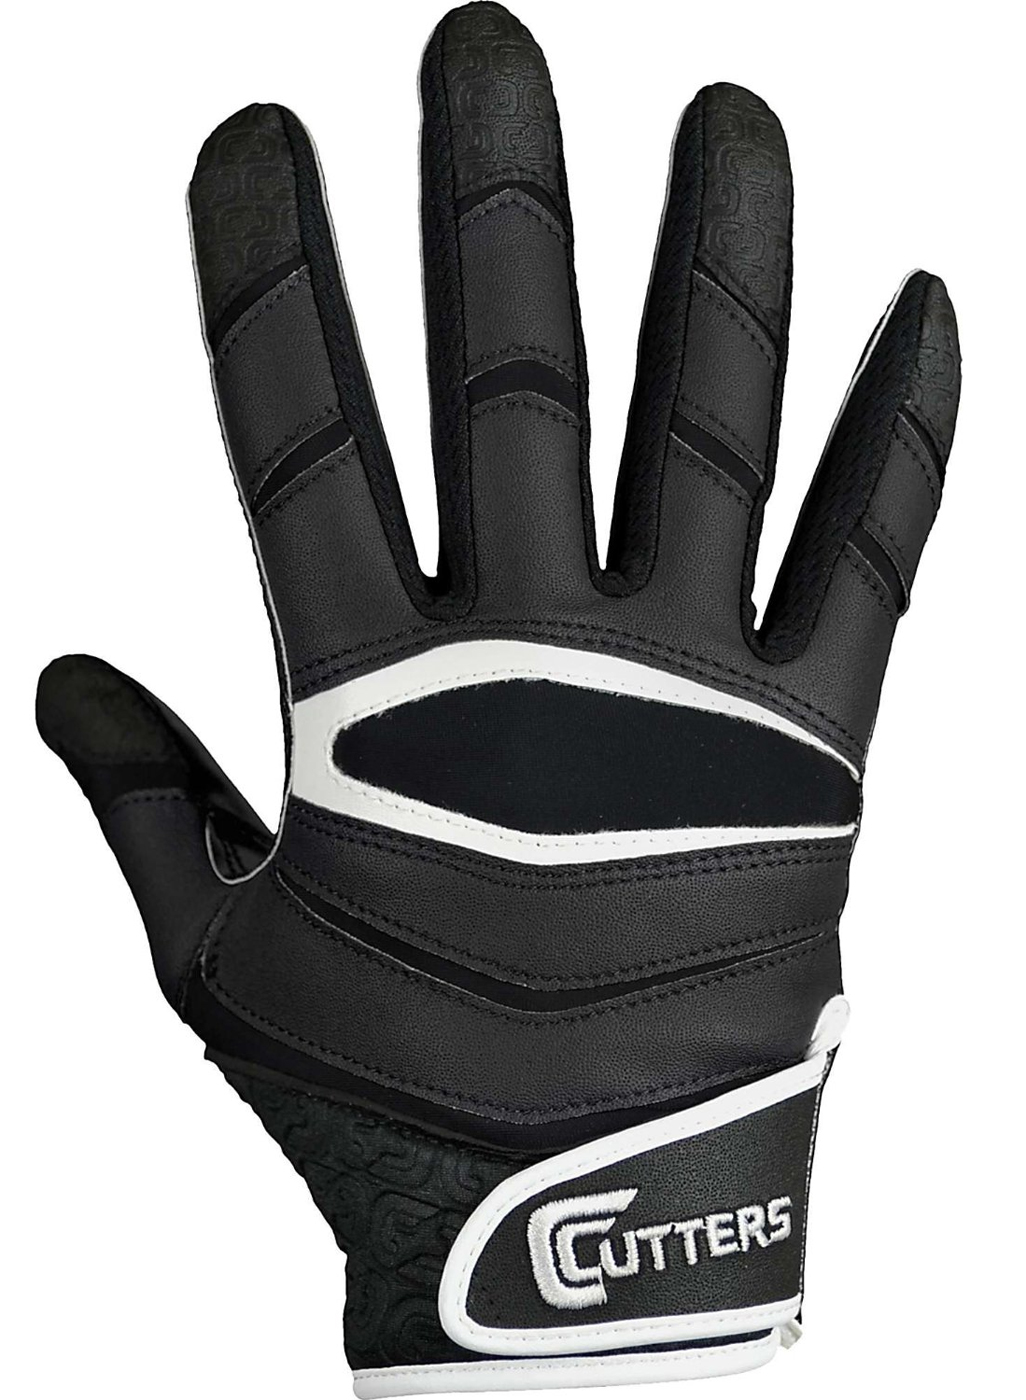 Receiver Gloves Youth Youth Football Receiver